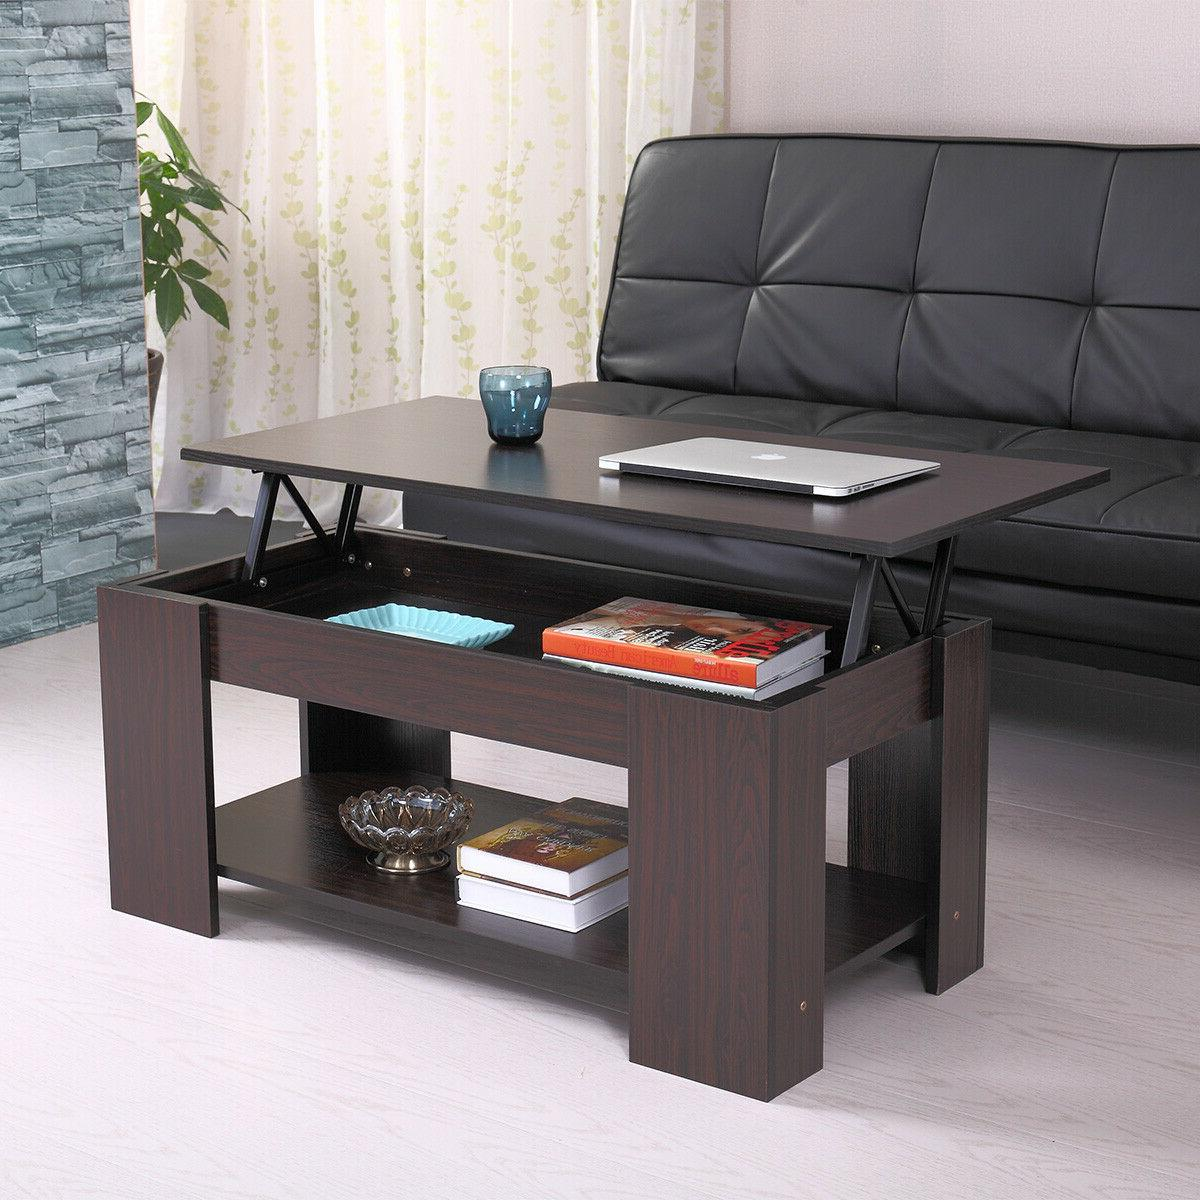 modern wood lift top coffee table w